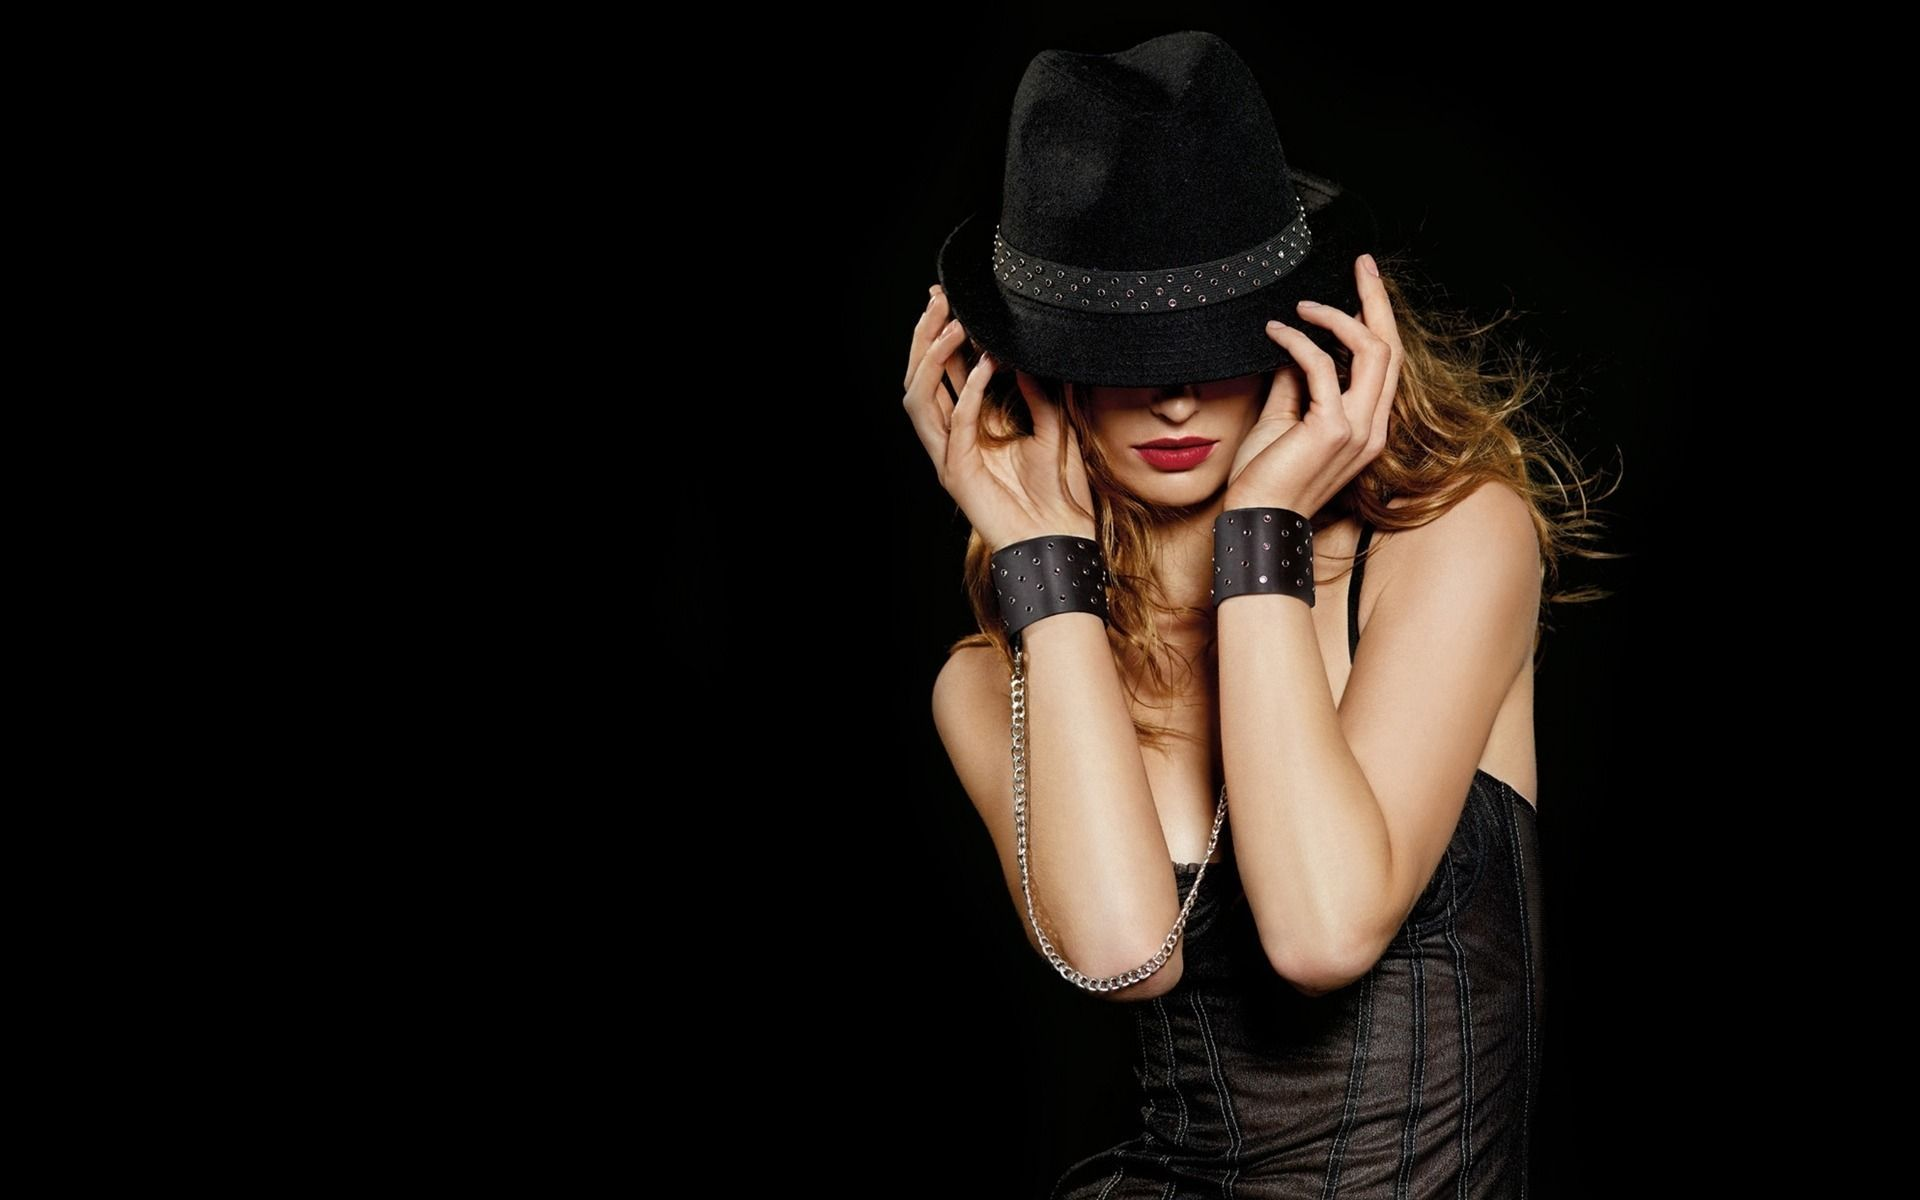 Girl In Hat Fashion Wallpaper Fashion Wallpaper Girl